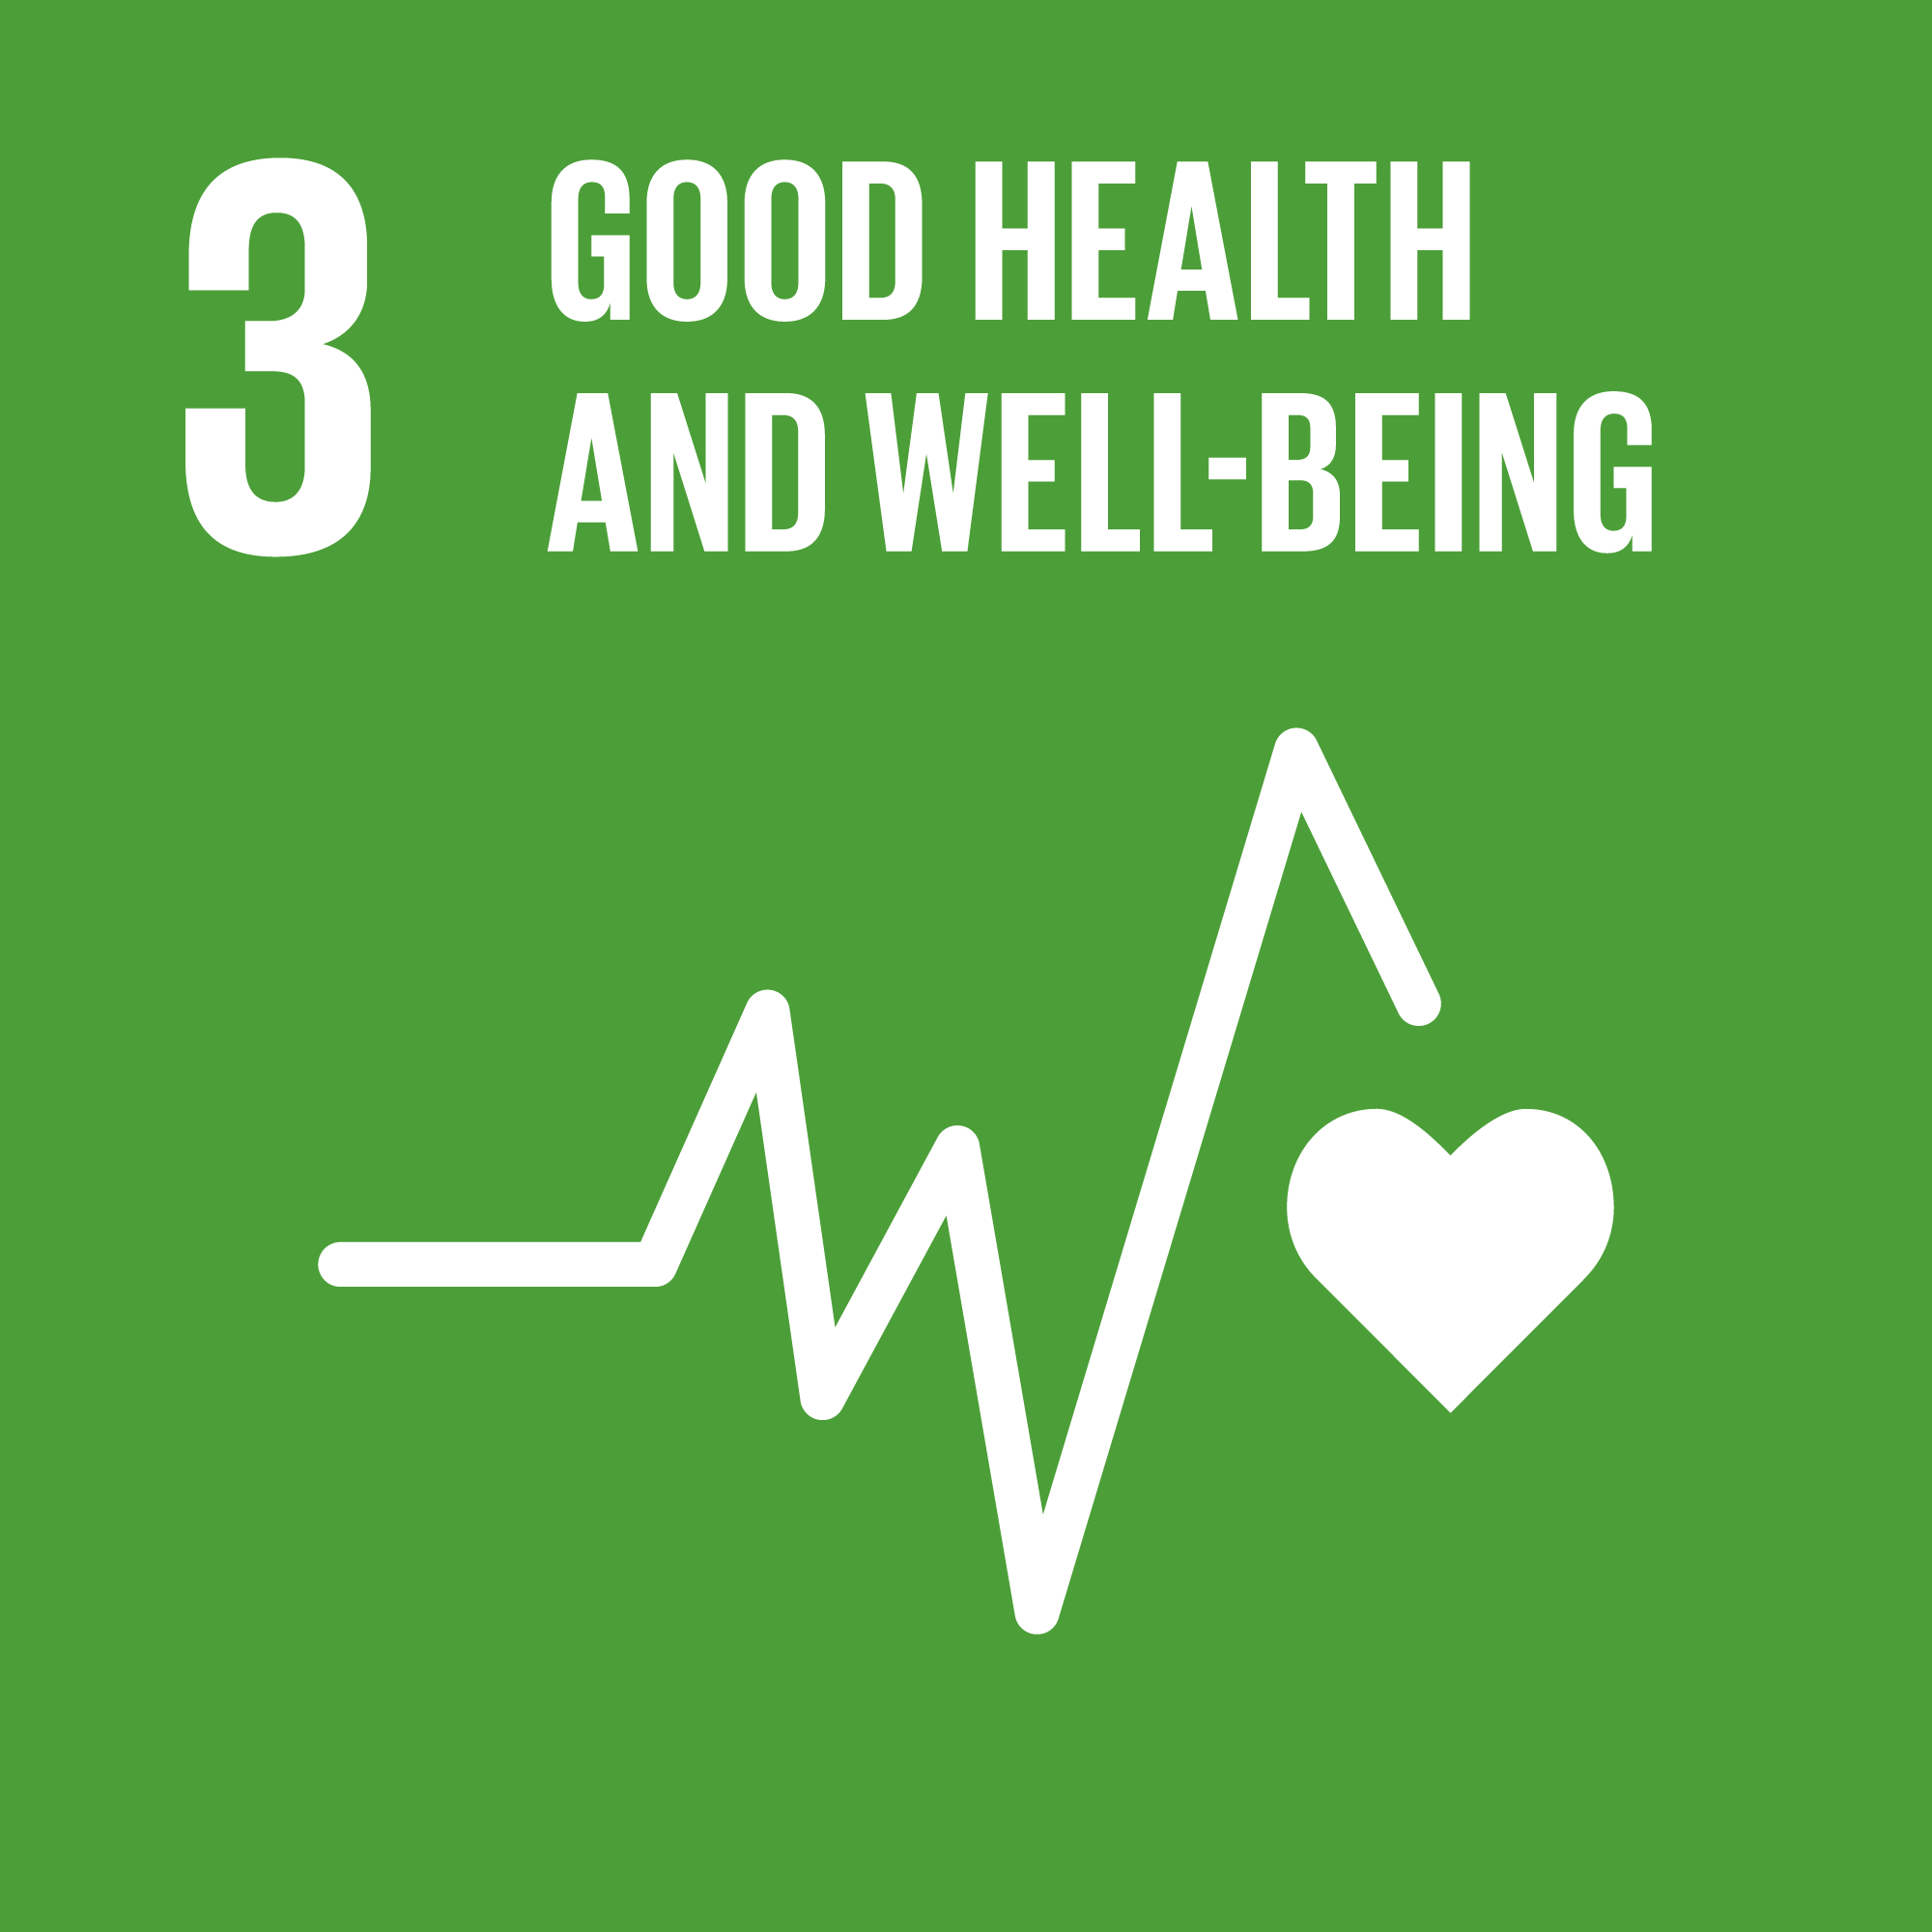 Icon for the global goals number 3, Good health and well-being